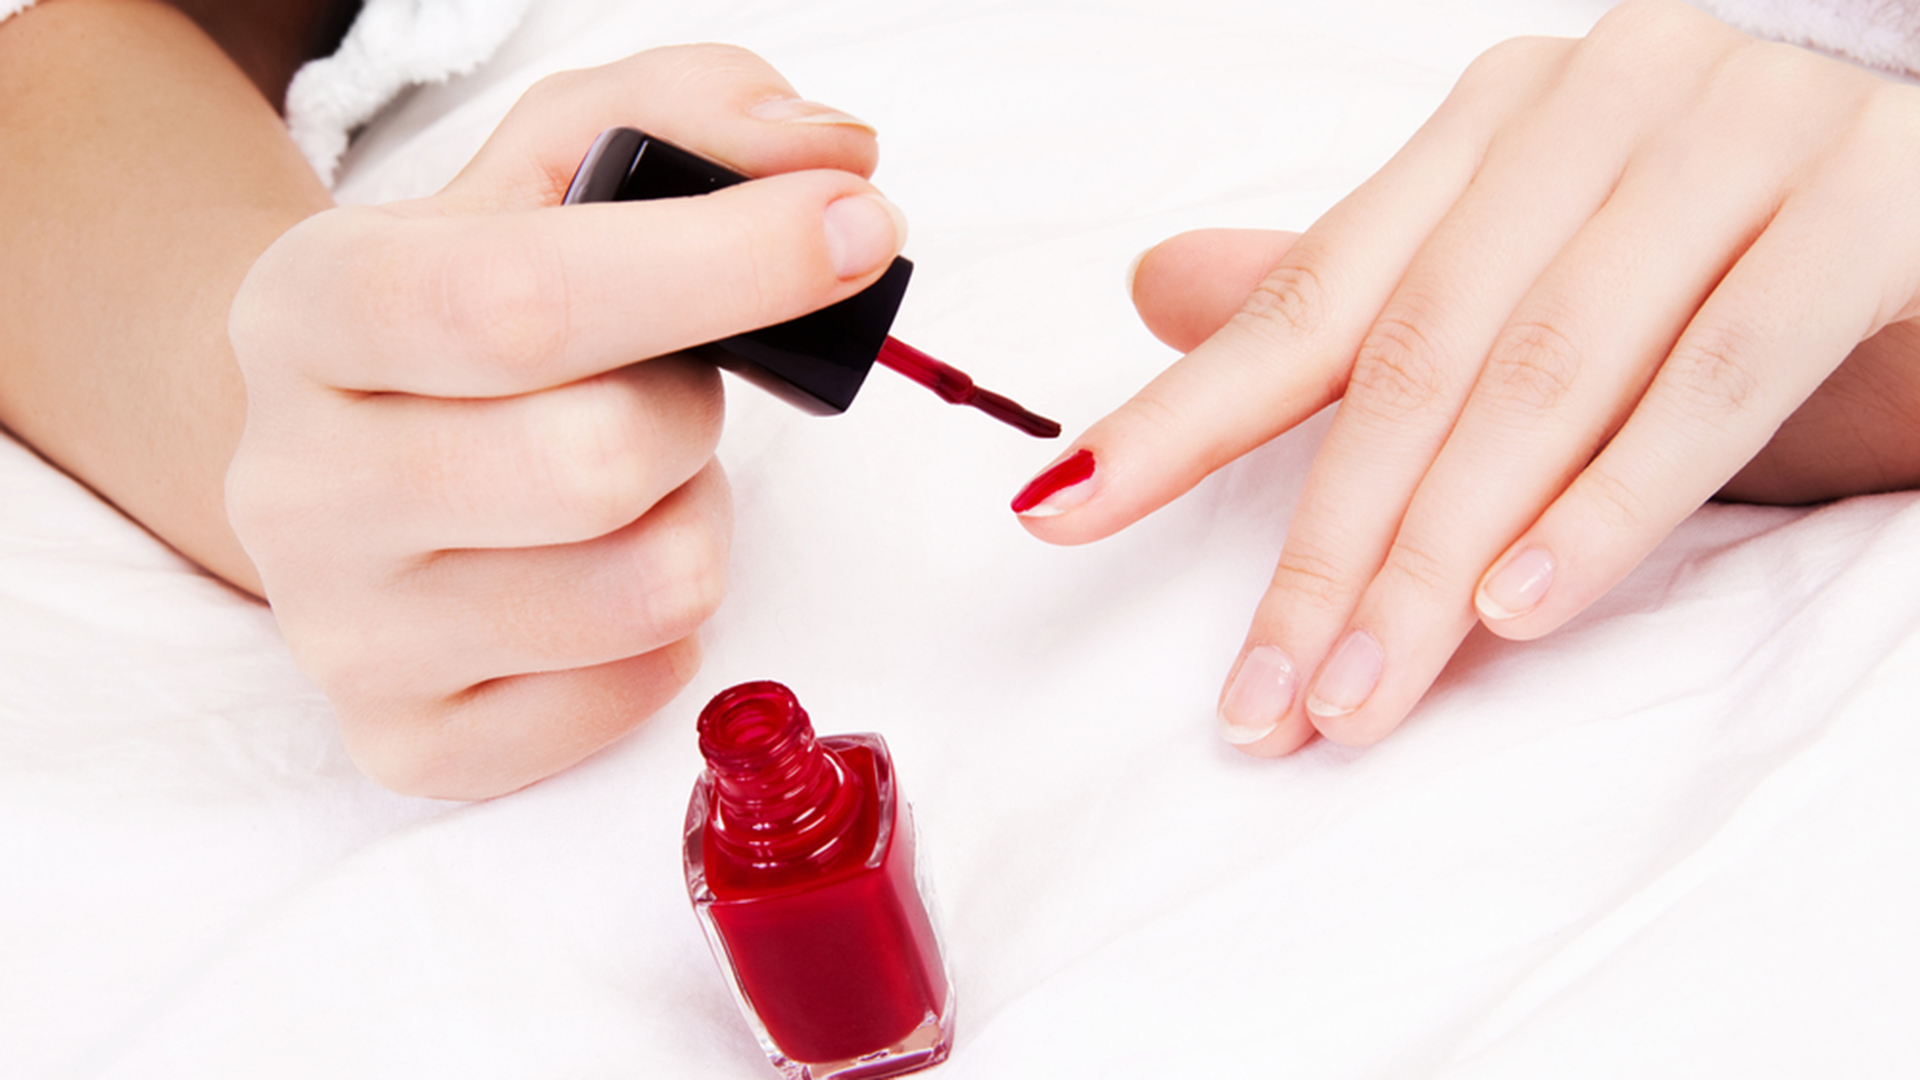 Nail salon expose how to get an at home manicure solutioingenieria Image collections